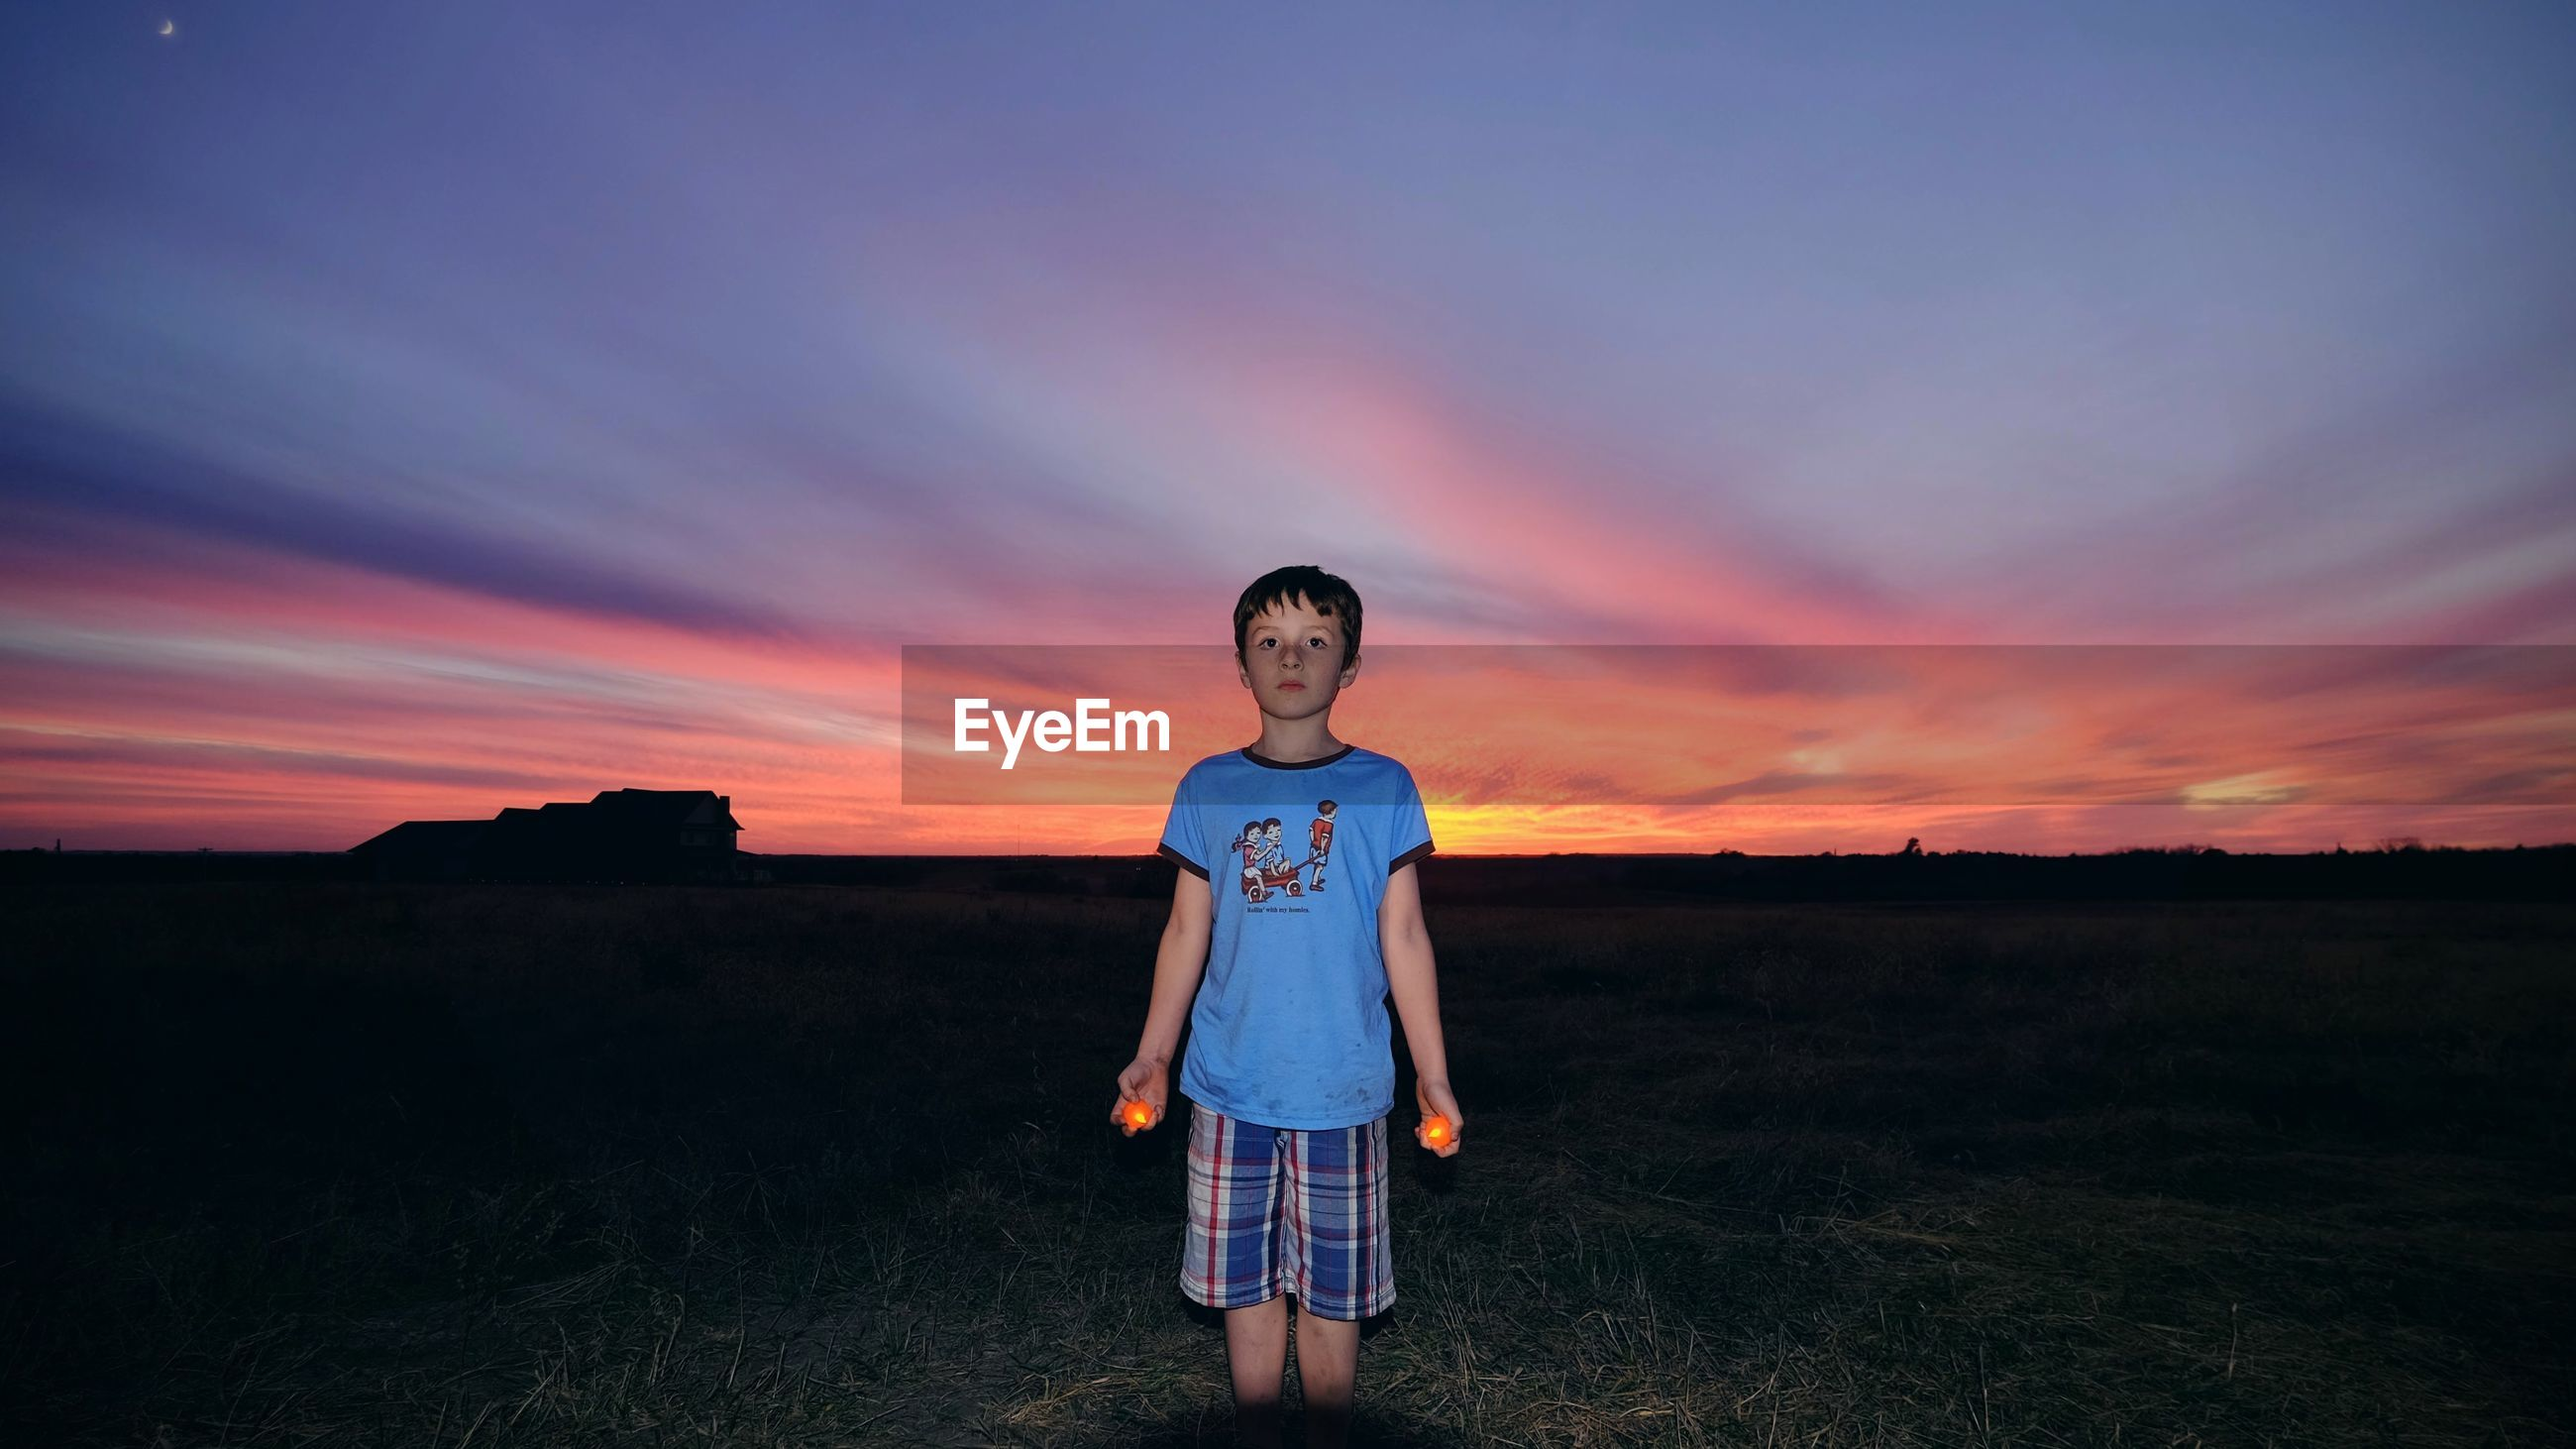 Boy holding lit candles while standing on grassy field at dusk